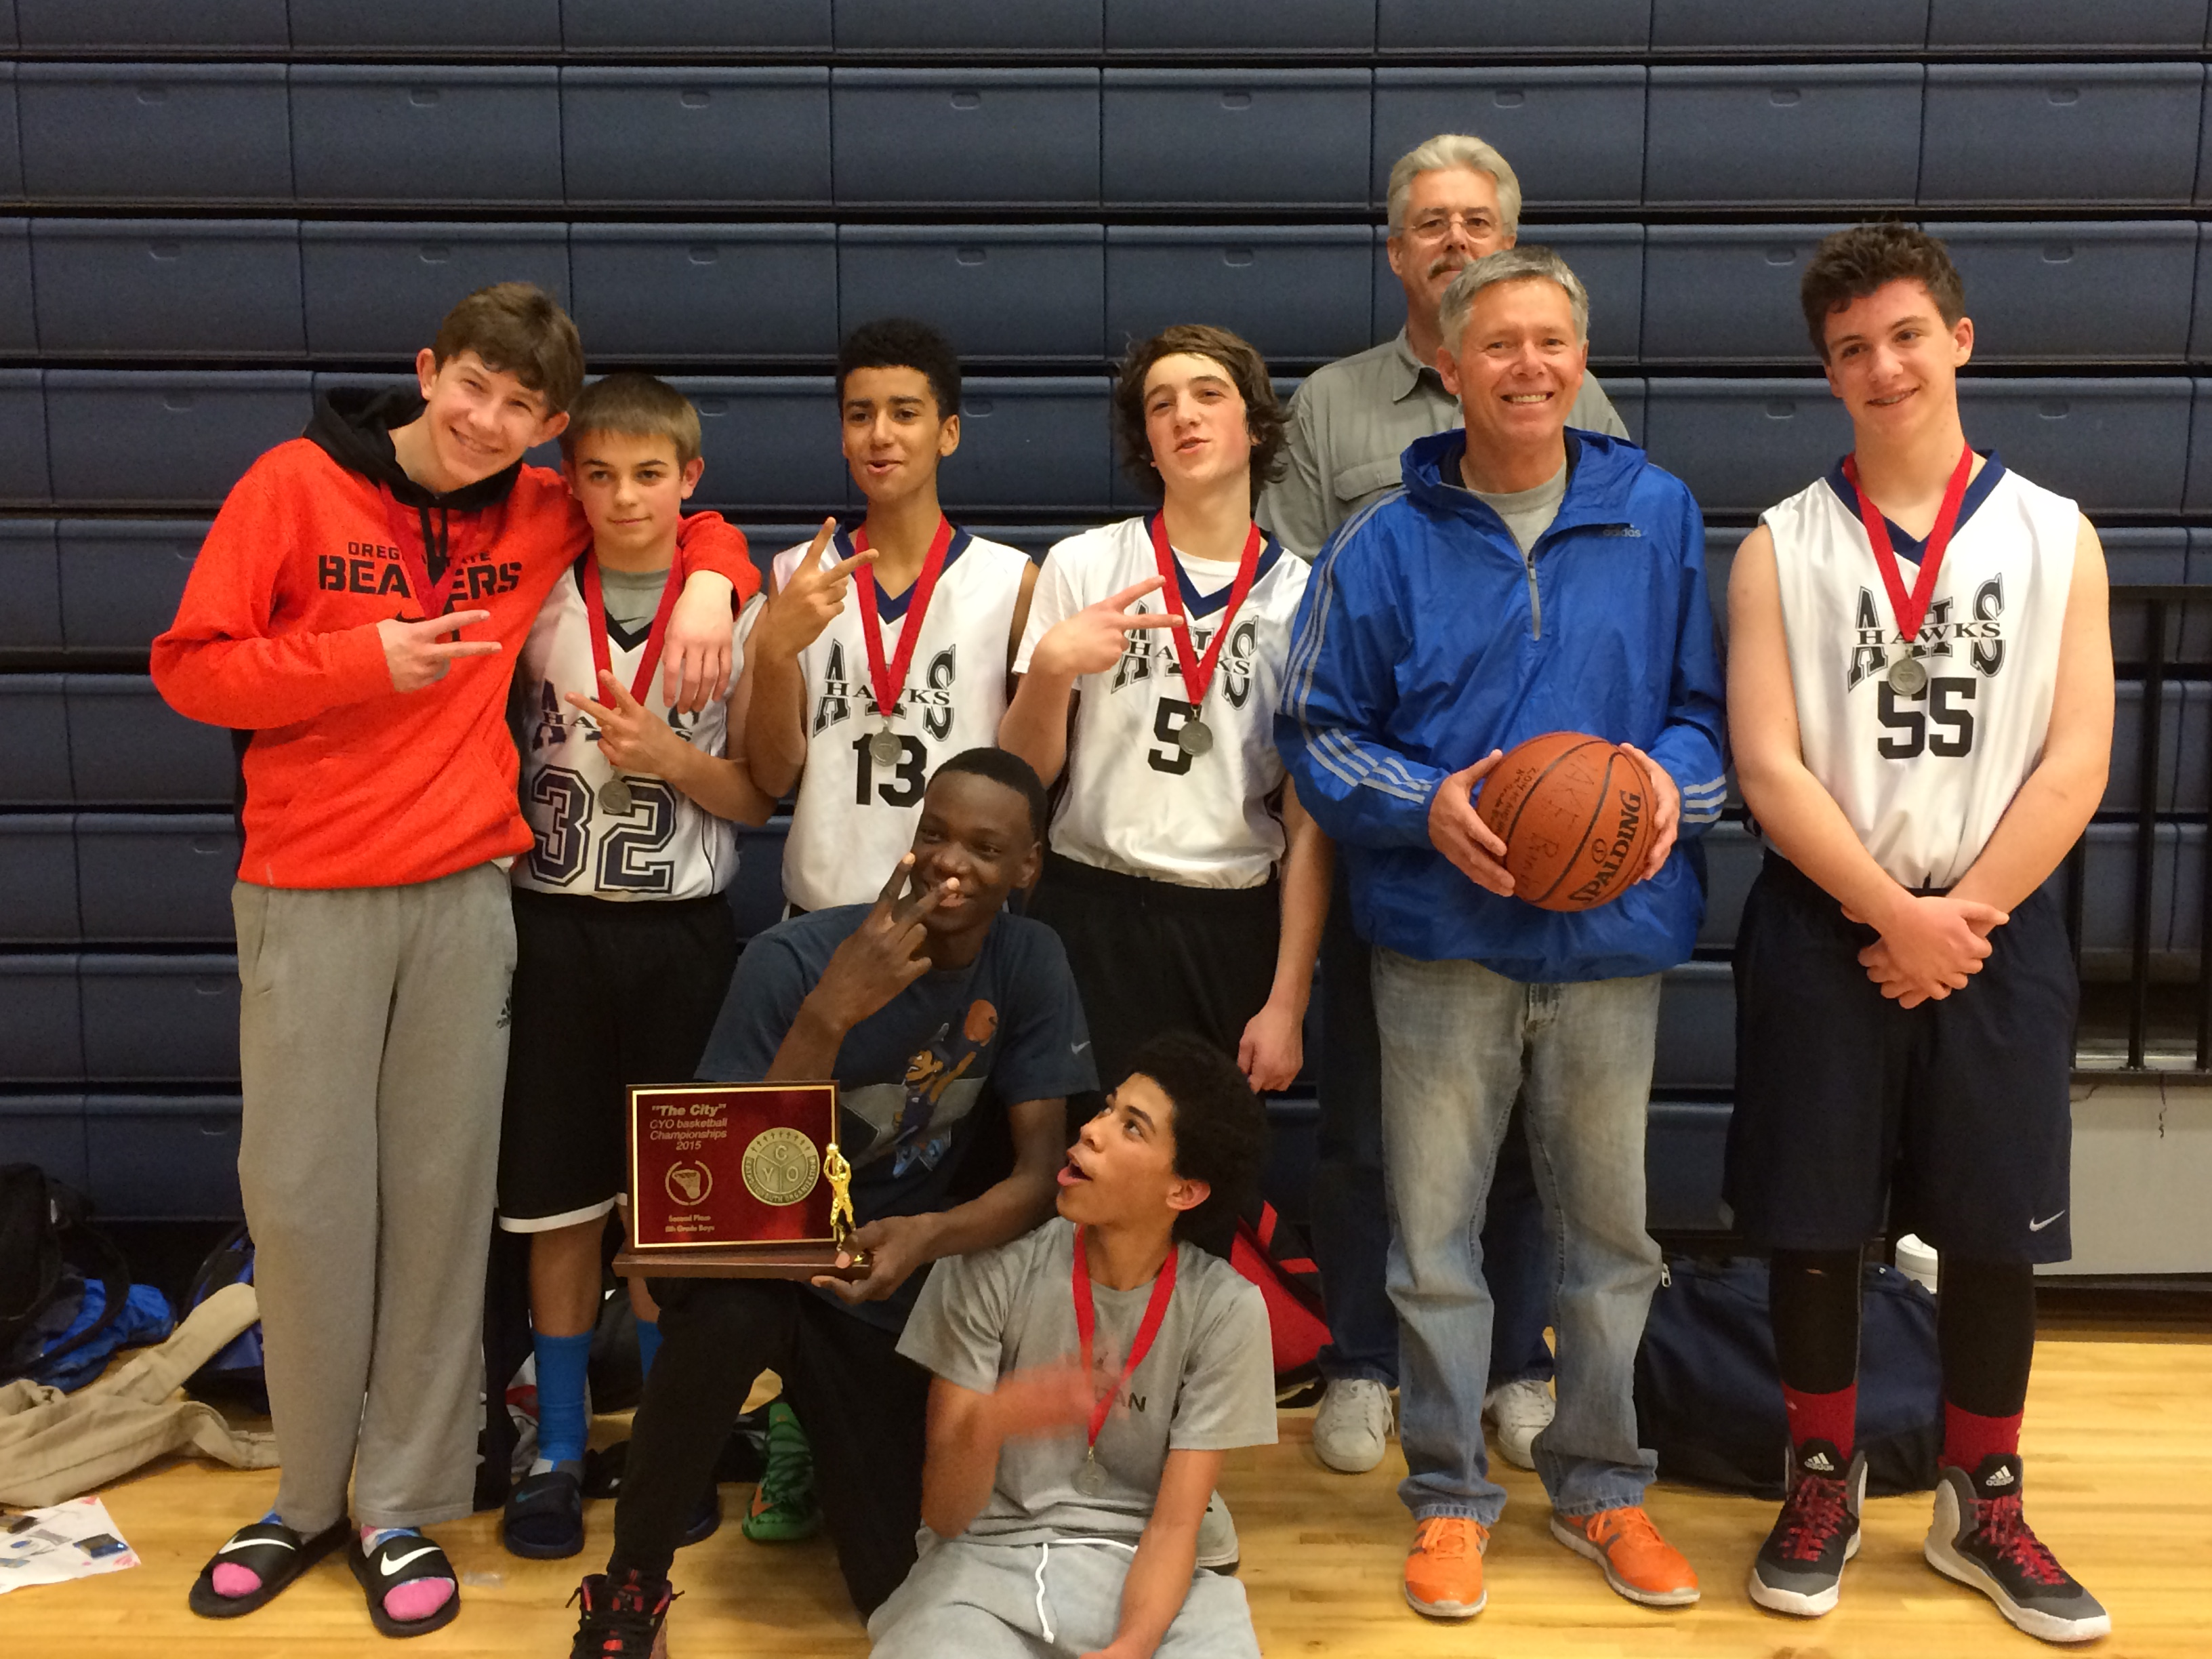 Archbishop Howard wins second place in the CYO 8th Grade Boys City Championship 2015